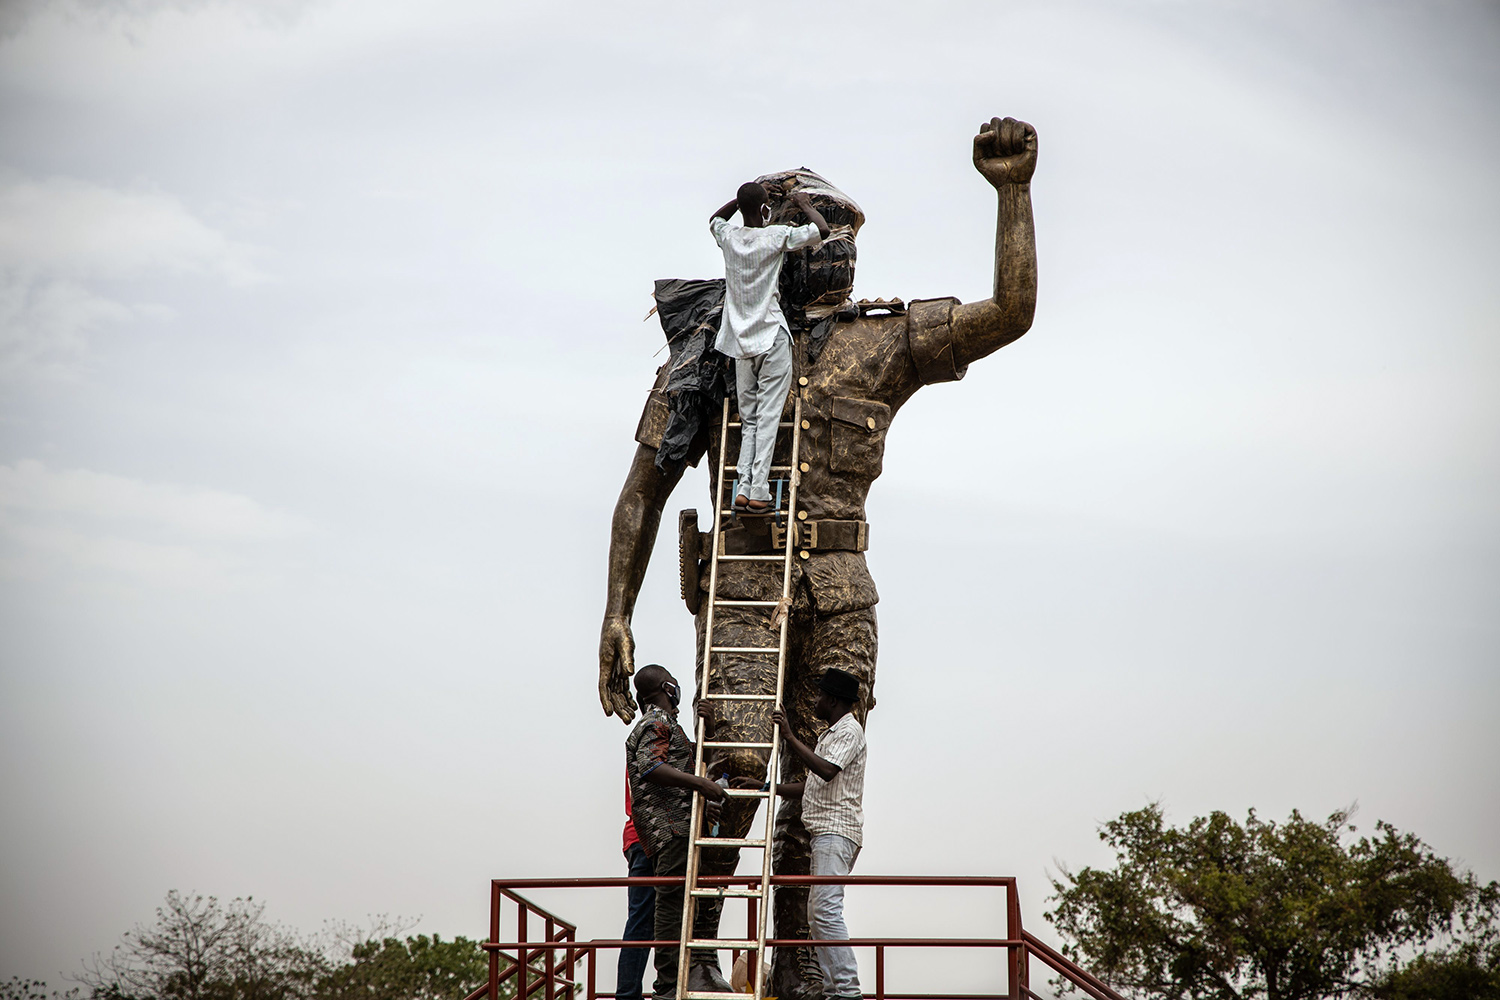 Employees unveil the second bronze statue of former Burkina Faso President Thomas Sankara, who was killed in 1987, at his memorial in Ouagadougou on May 17. The first version was removed because of complaints that it didn't bear a resemblance to the national hero. OLYMPIA DE MAISMONT/AFP via Getty Images